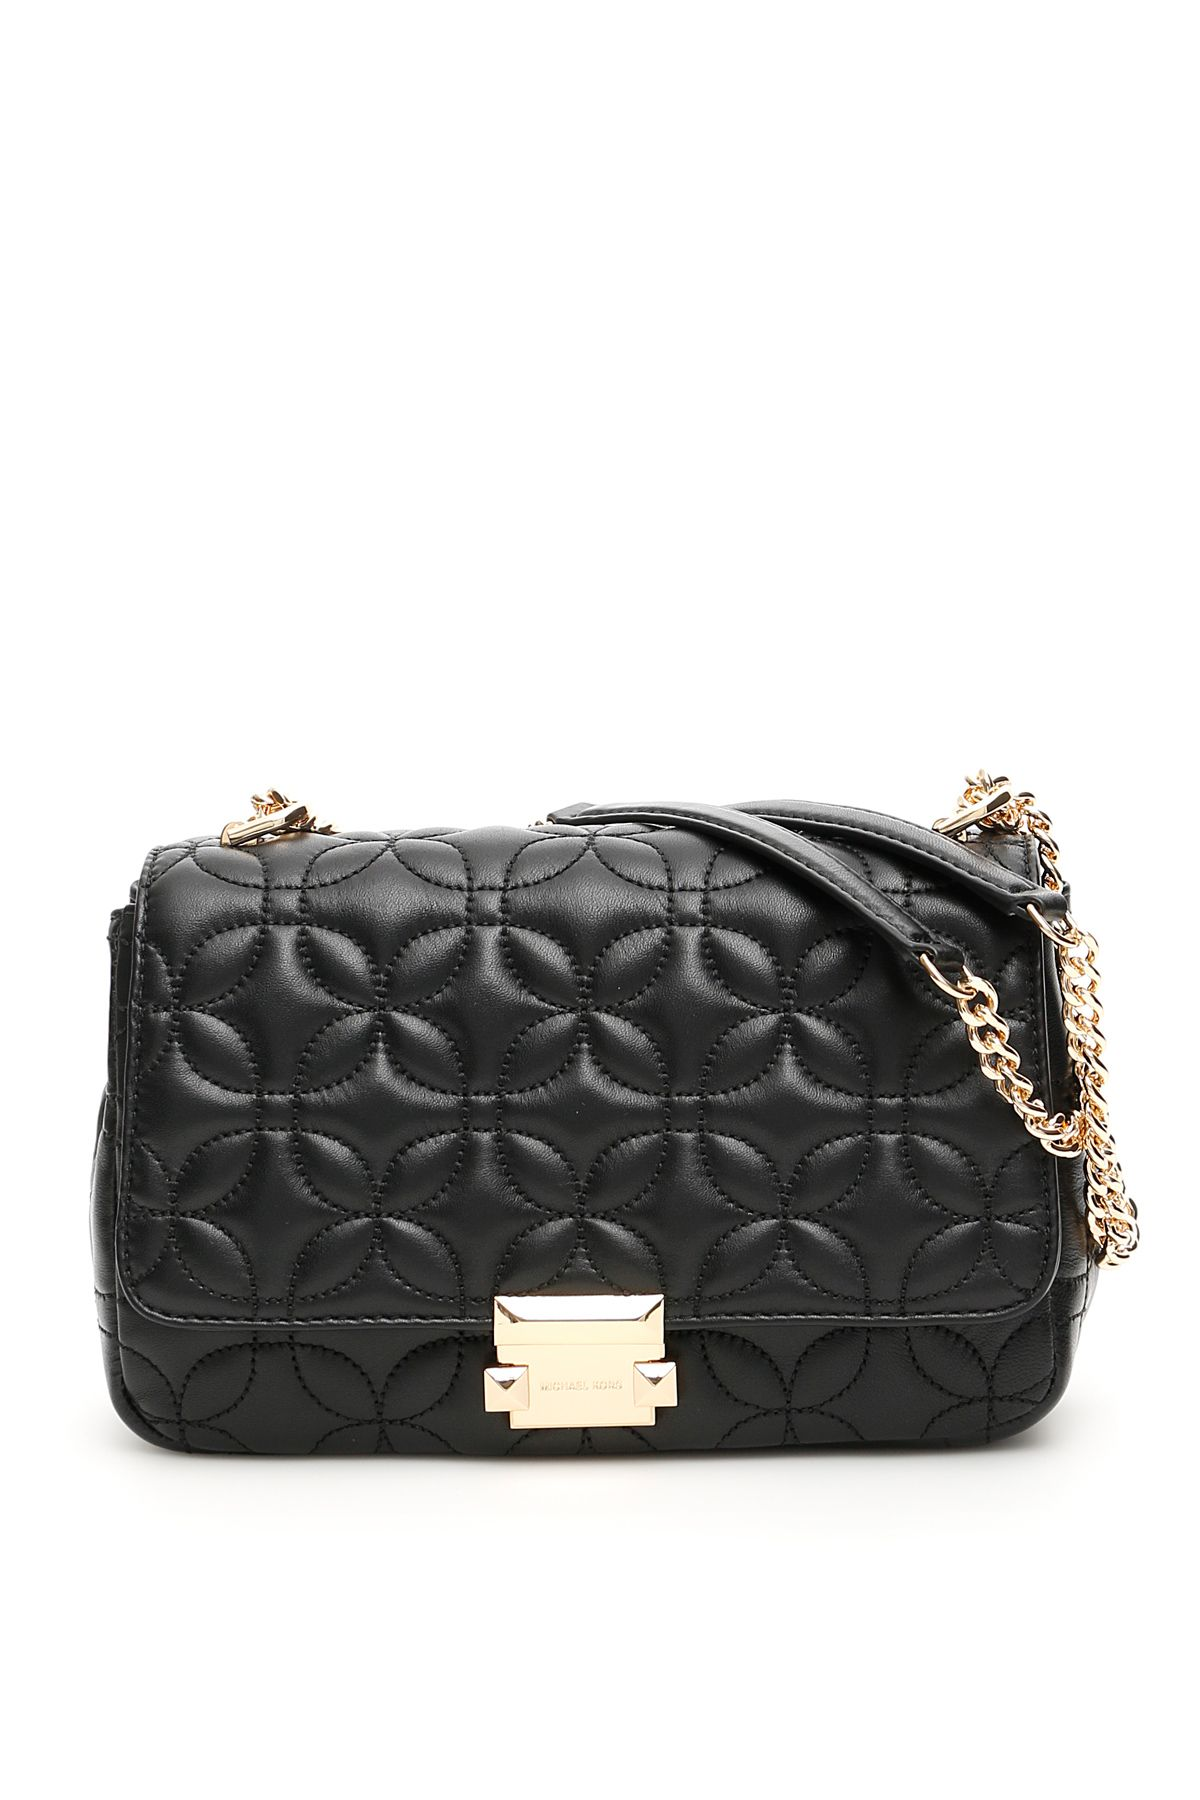 902ed13522732 MICHAEL Michael Kors MICHAEL Michael Kors Quilted Leather Sloan Bag ...